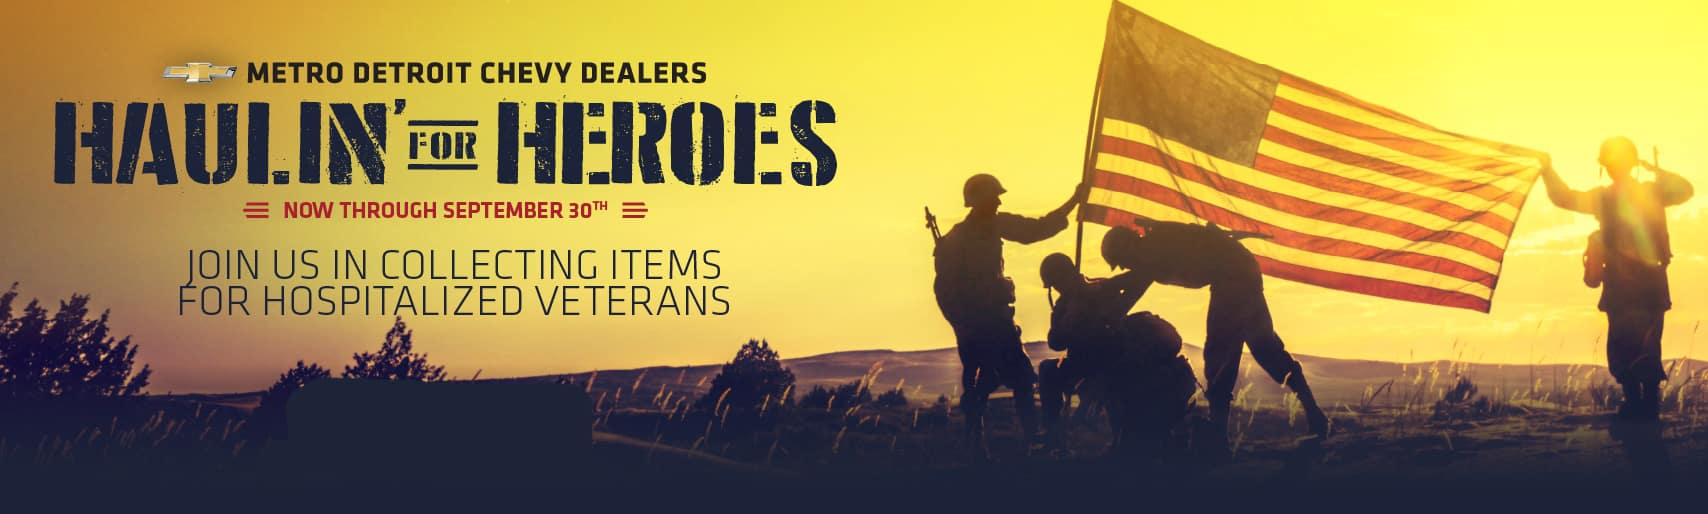 Haulin' for Heroes Michigan Chevy Dealers